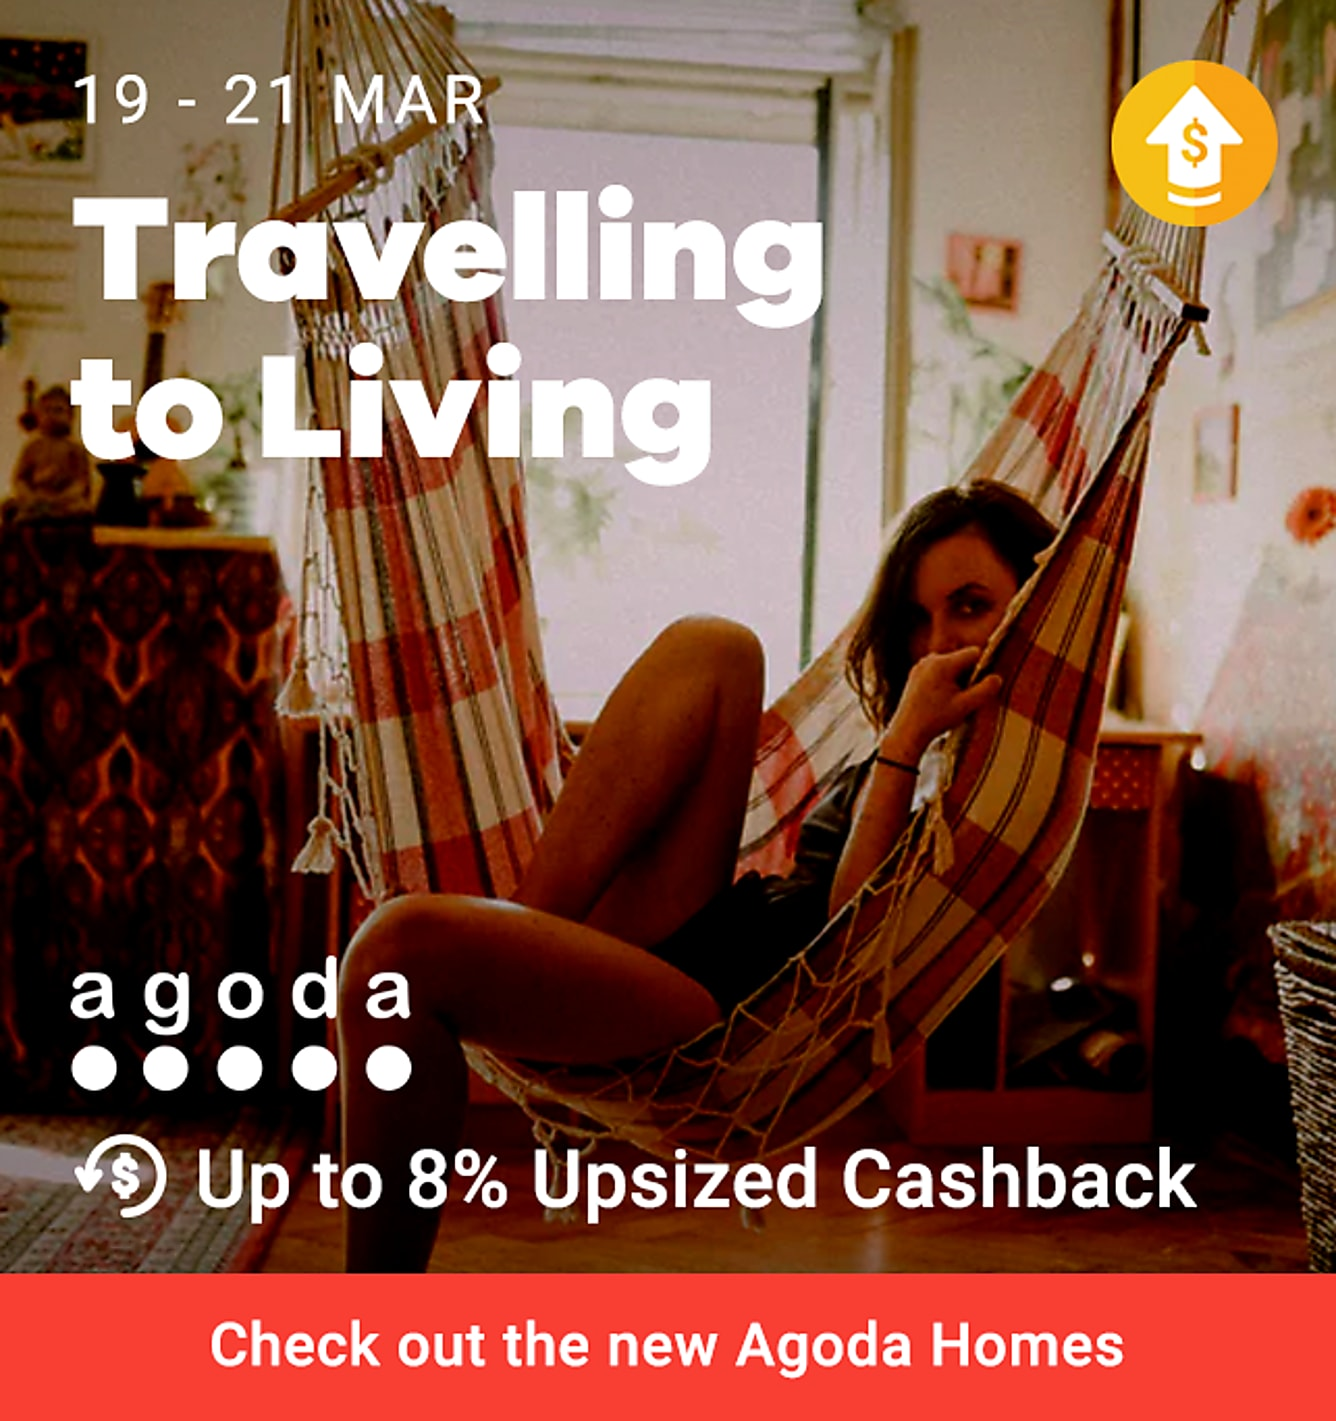 Agoda up to 8% upsize cashback (was 6%) from 19-21 mar